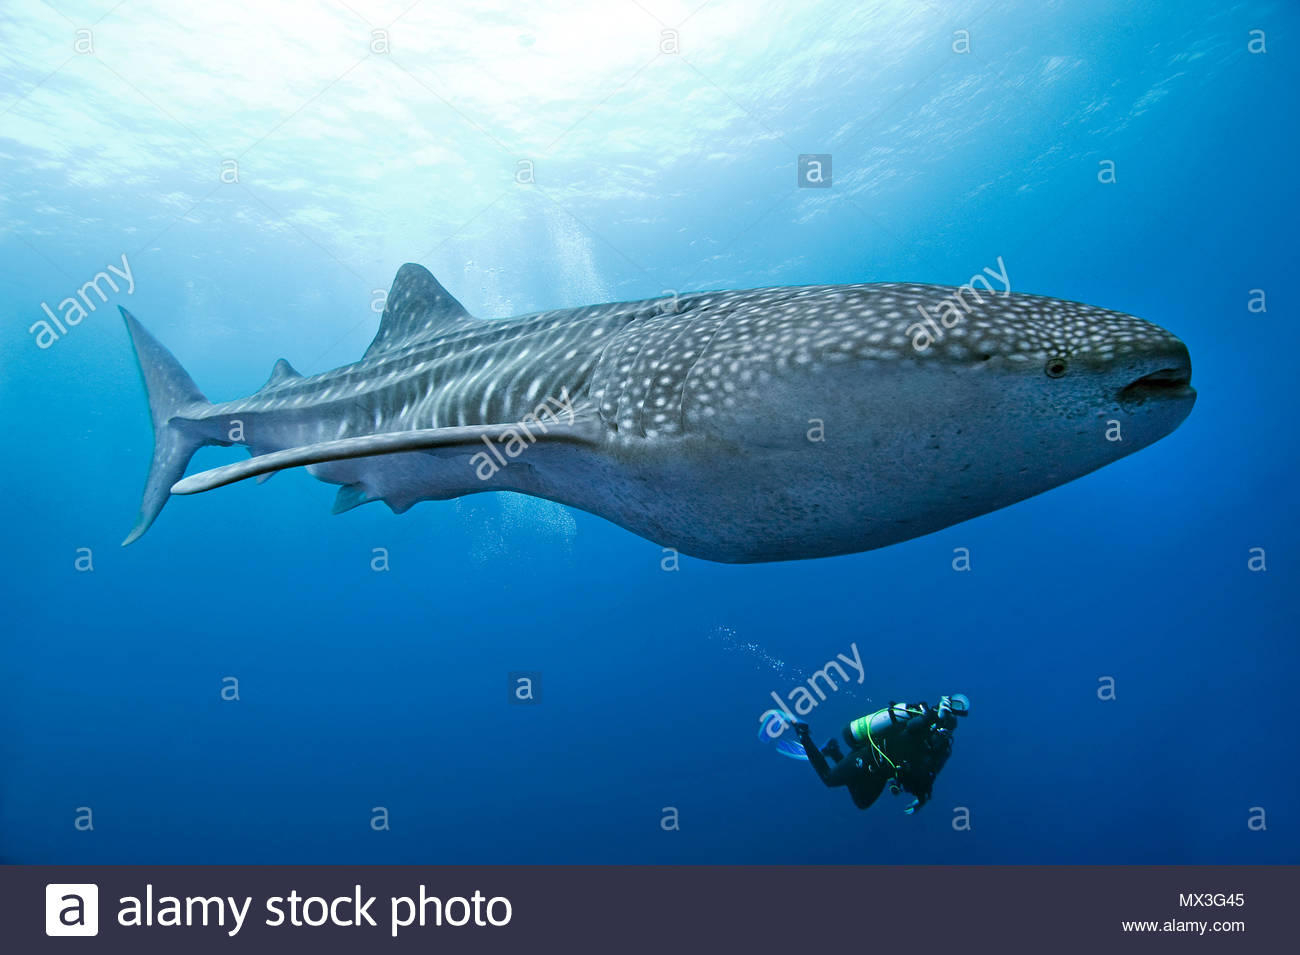 Scuba Diver regardant un requin-baleine (Rhincodon typus), plus grand poisson de l'île Cocos, monde, Costa Rica, Amérique Centrale, Amérique Latine Photo Stock